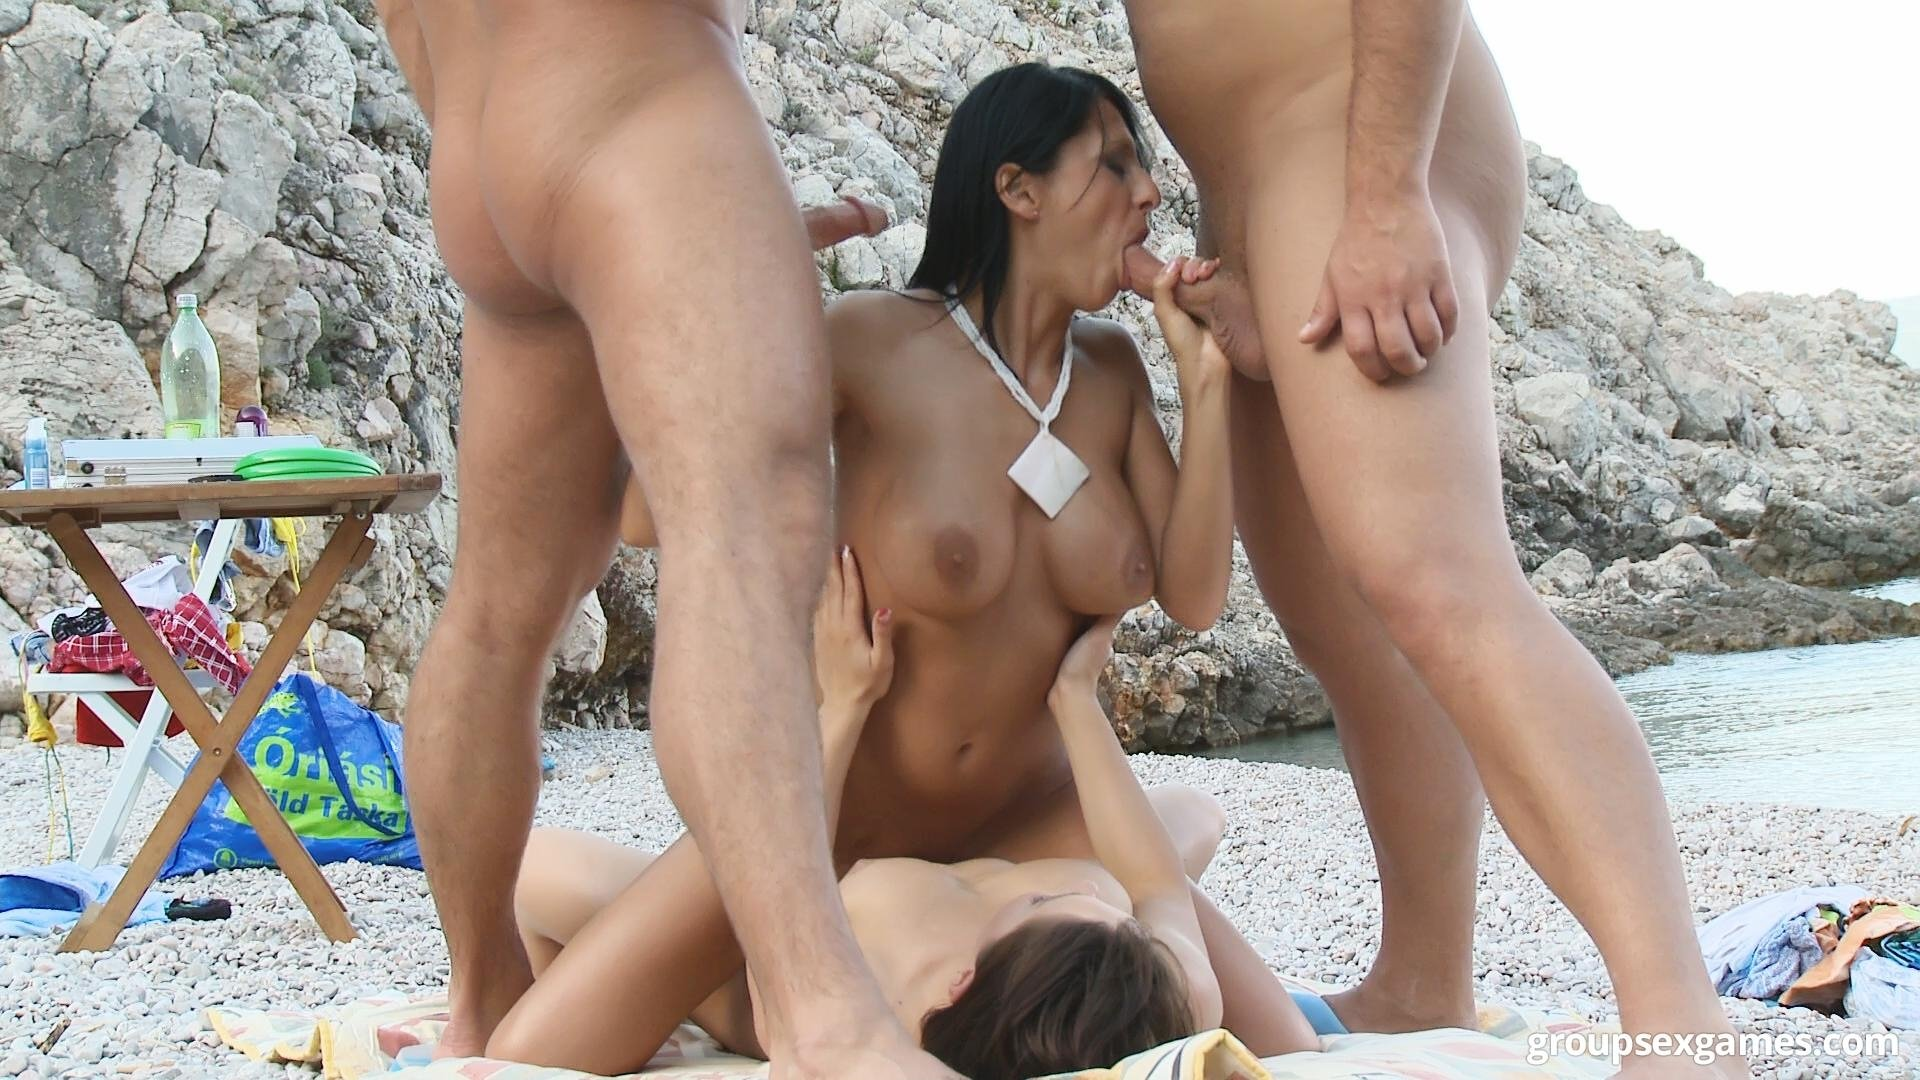 Outdoor sexcapades